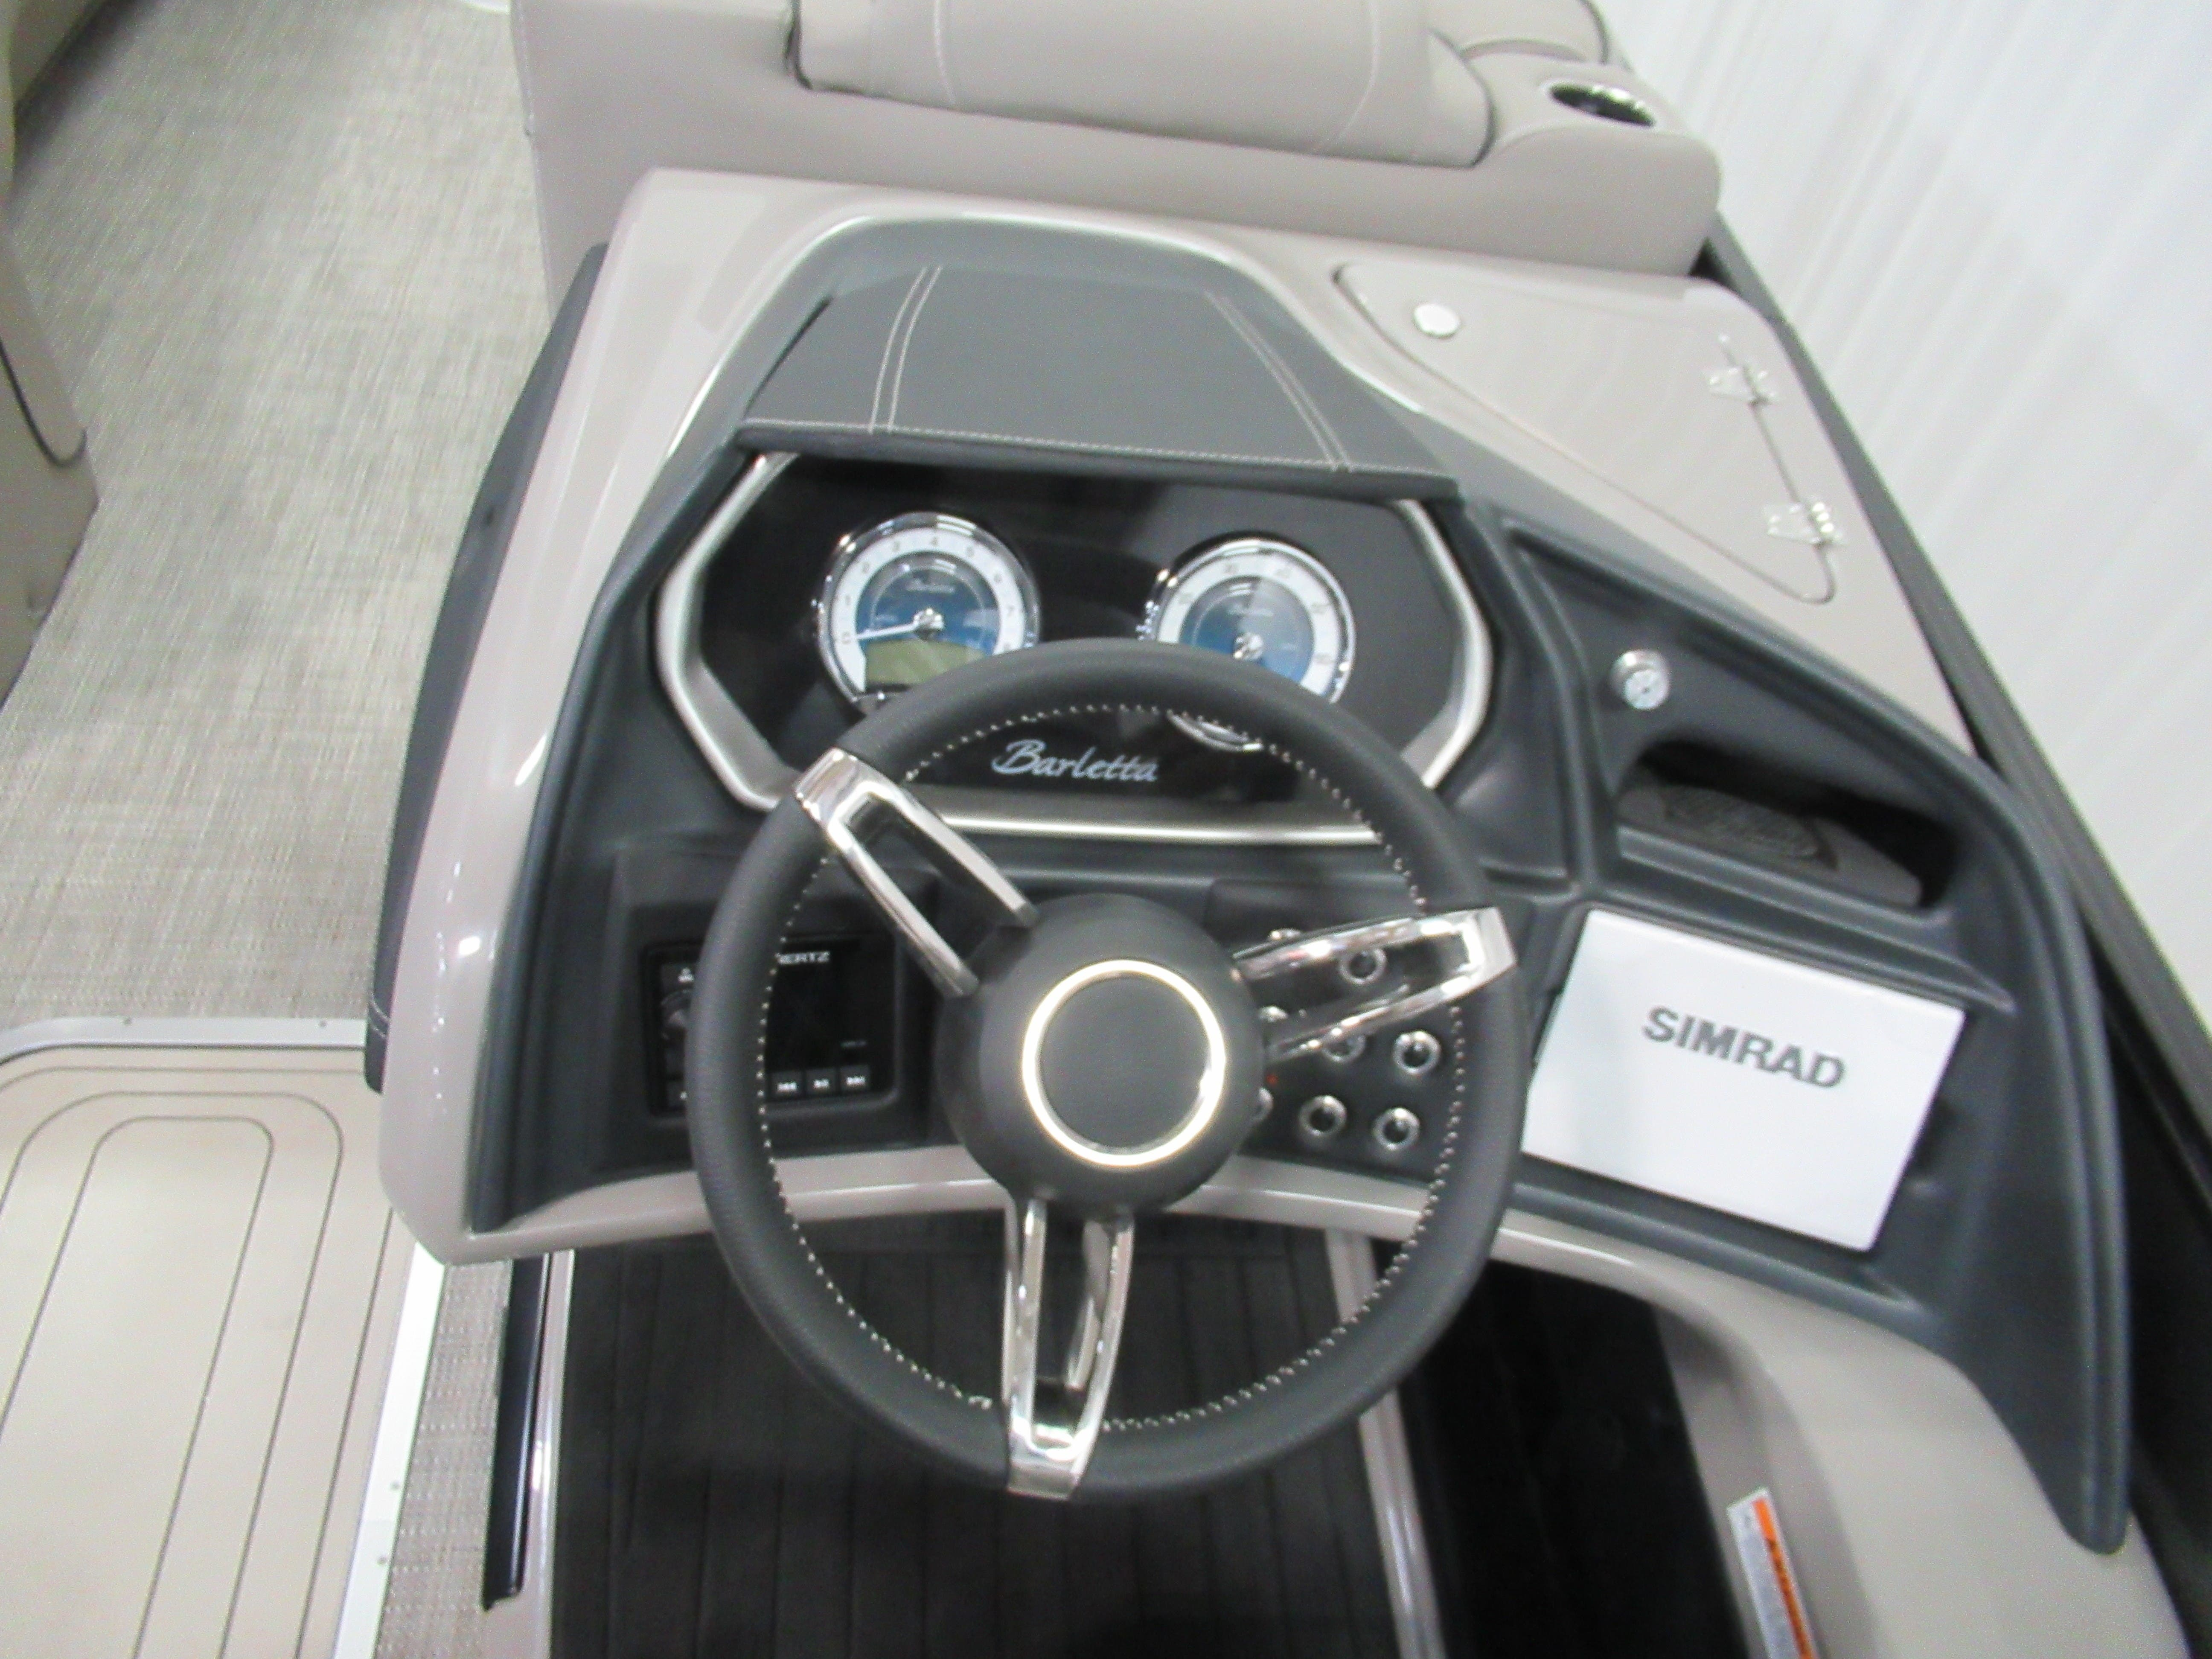 2021 Barletta boat for sale, model of the boat is L25uc & Image # 9 of 11